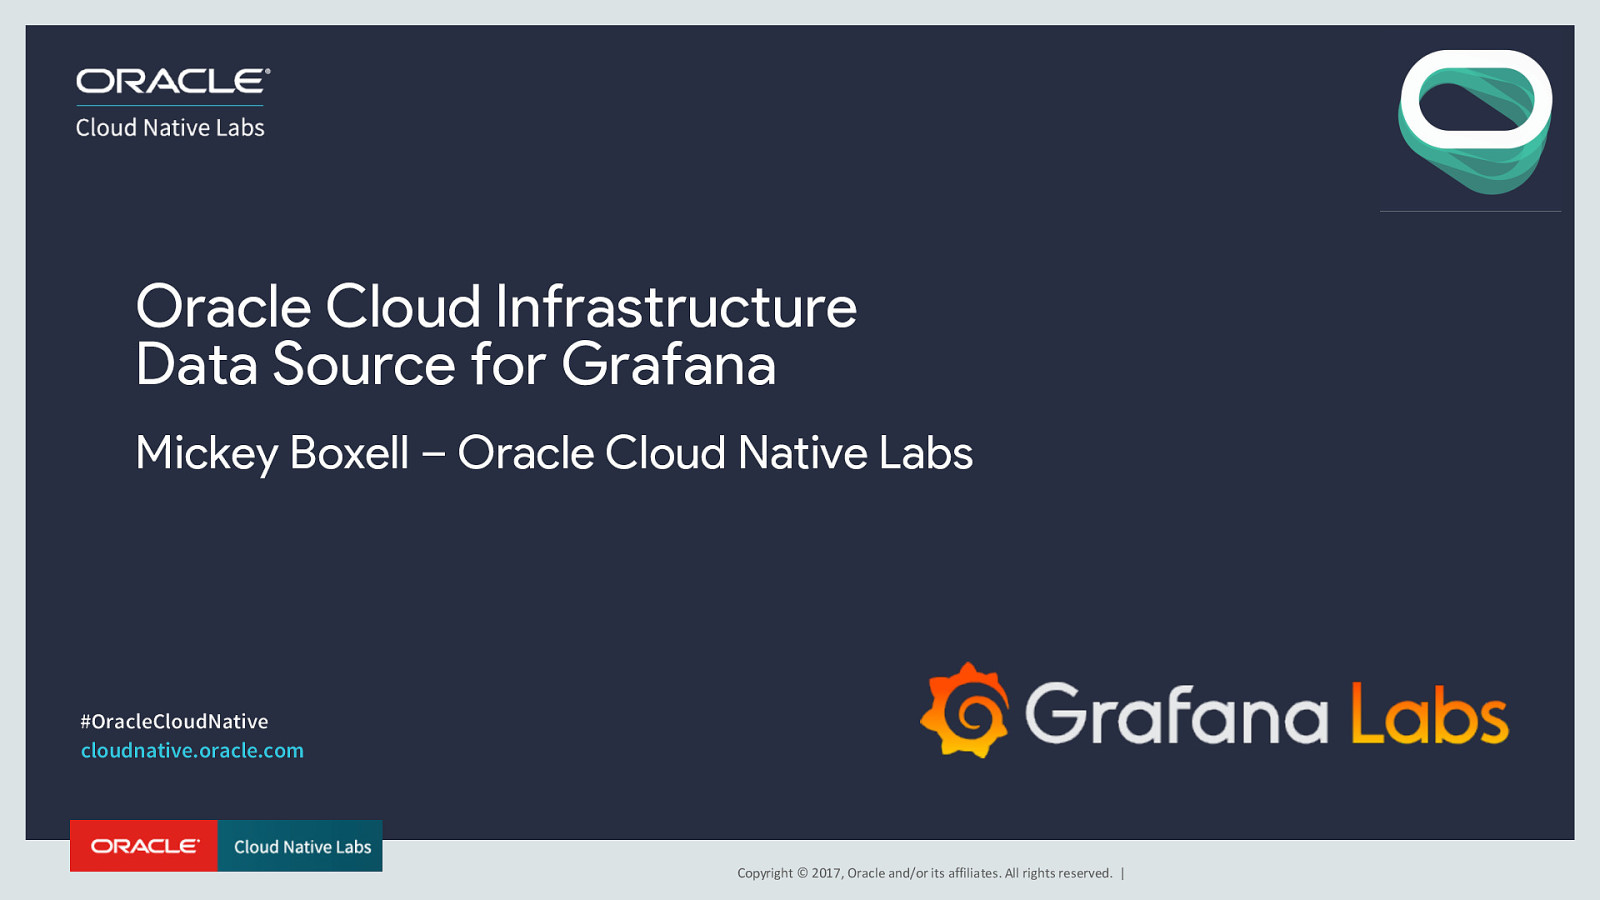 Utilizing the Oracle Cloud Data Source for Grafana